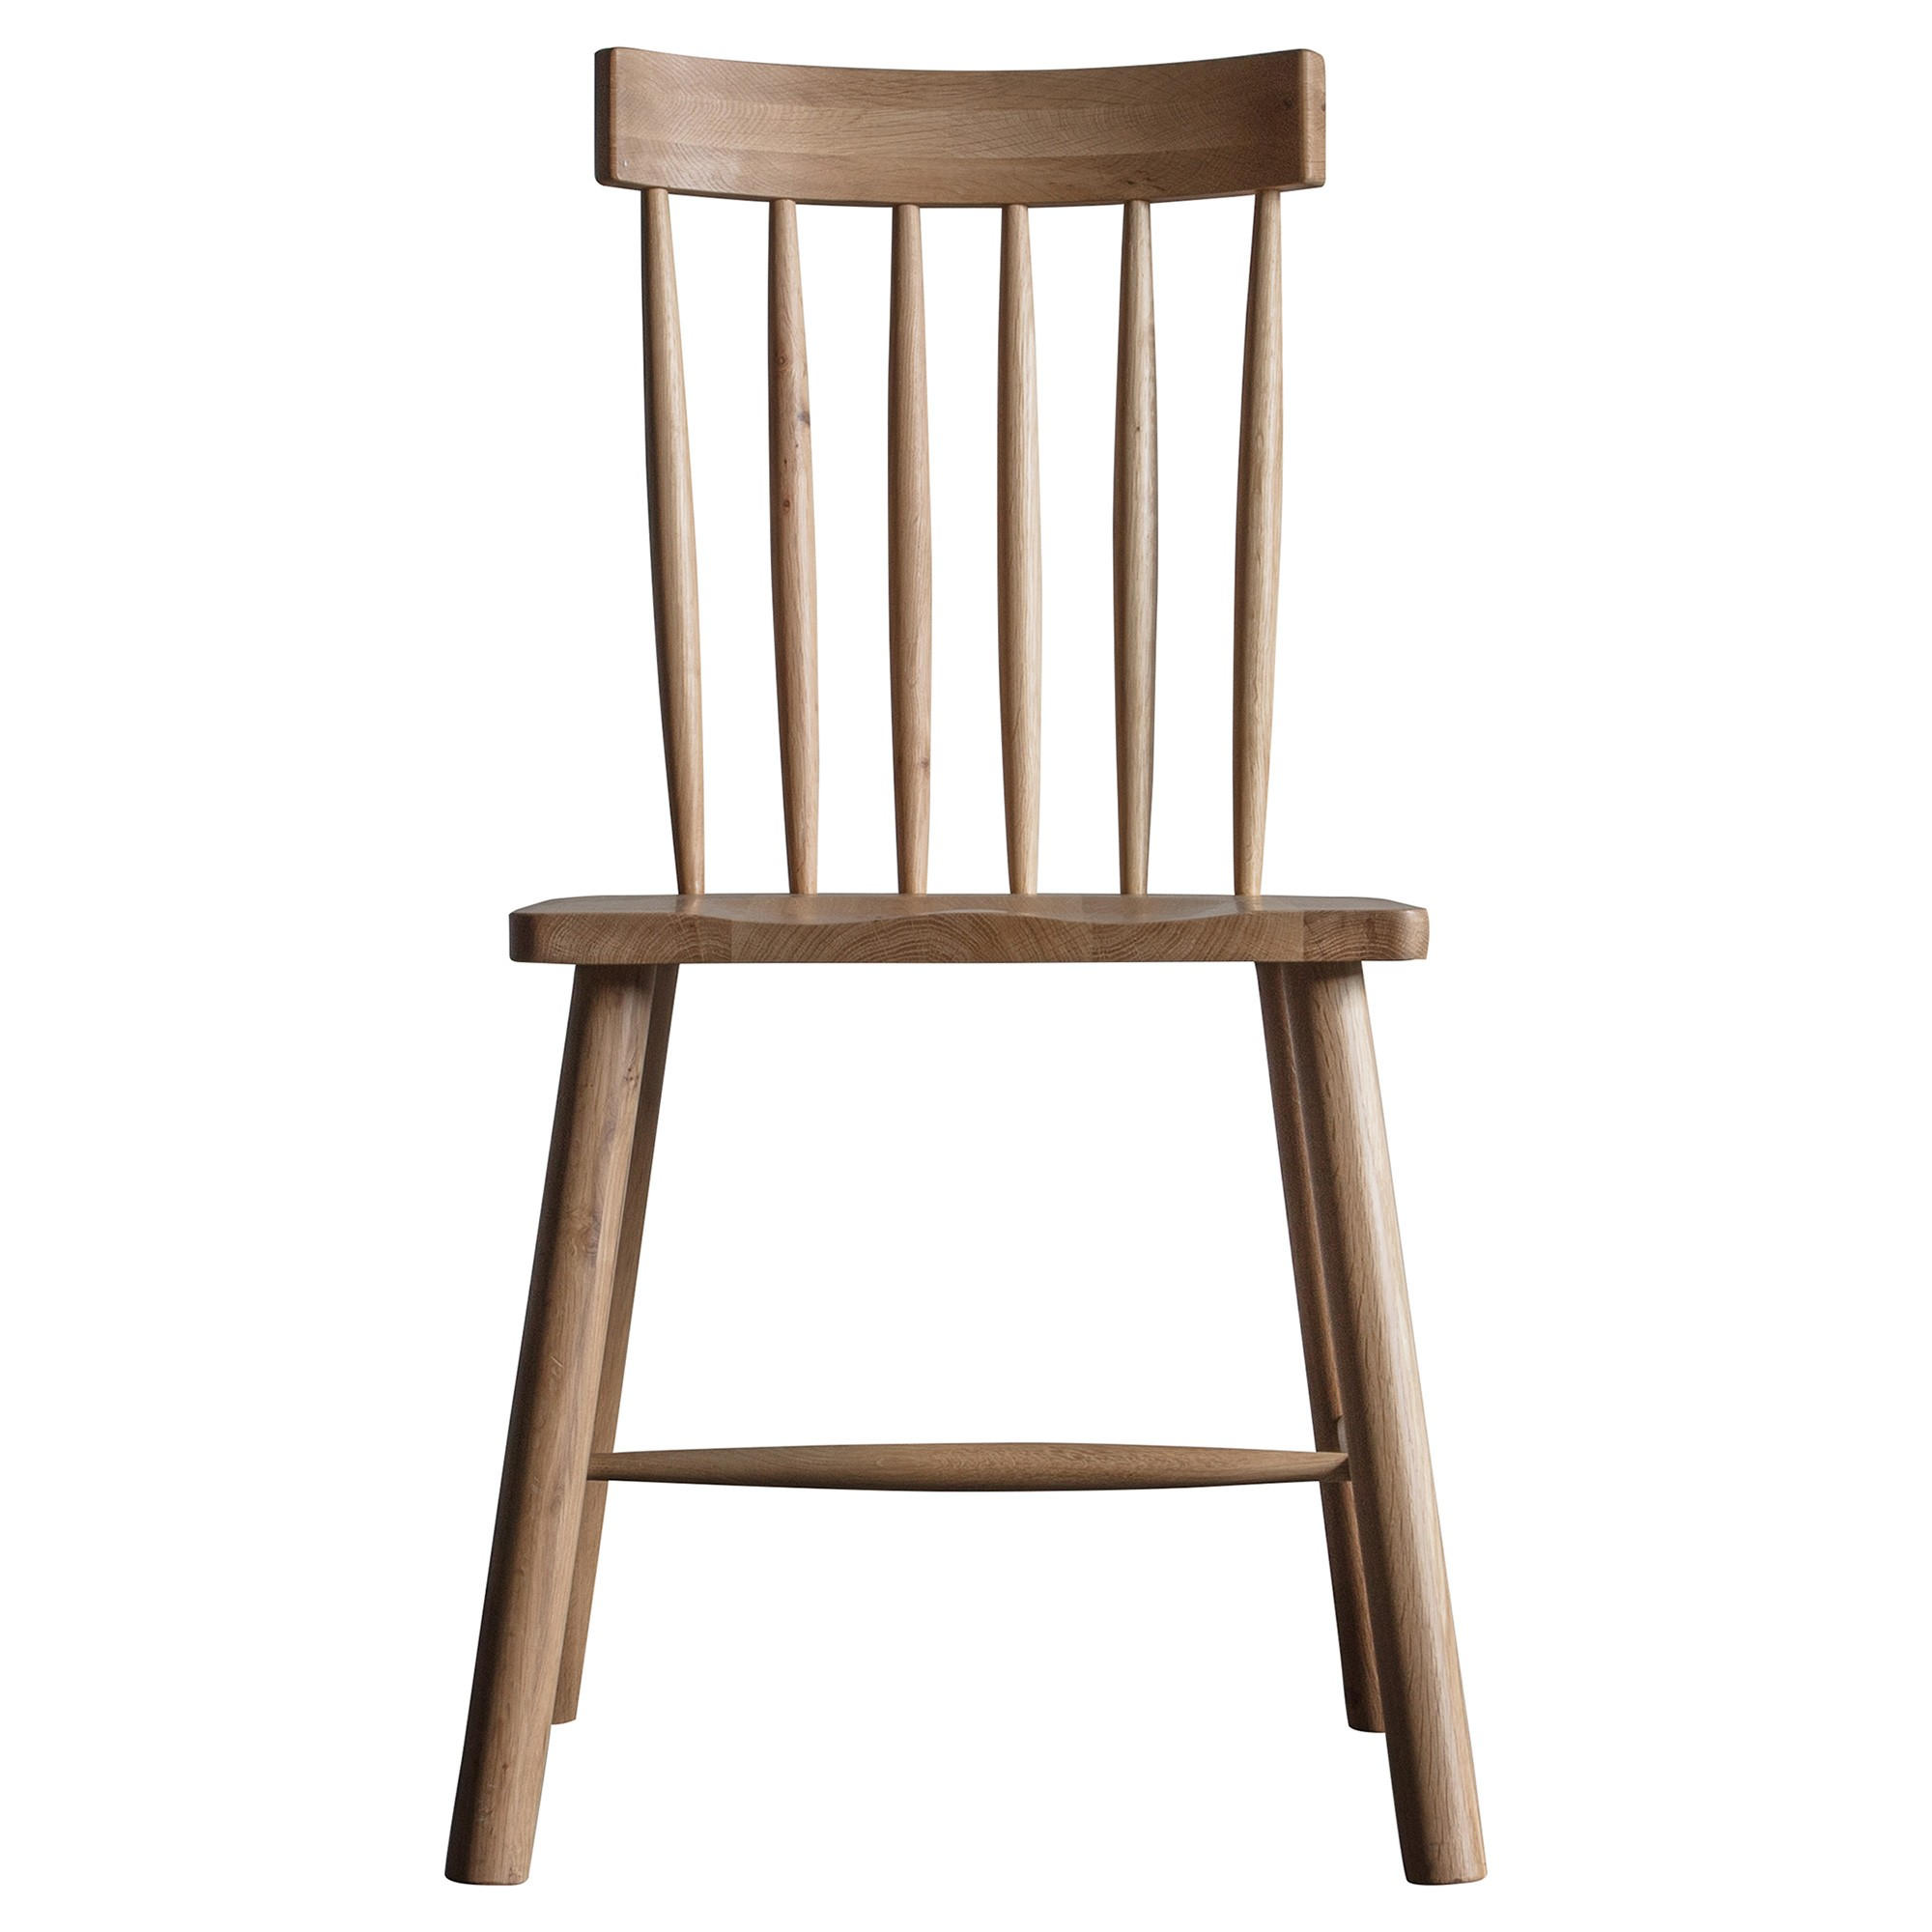 Kingham European Oak Timber Dining Chair